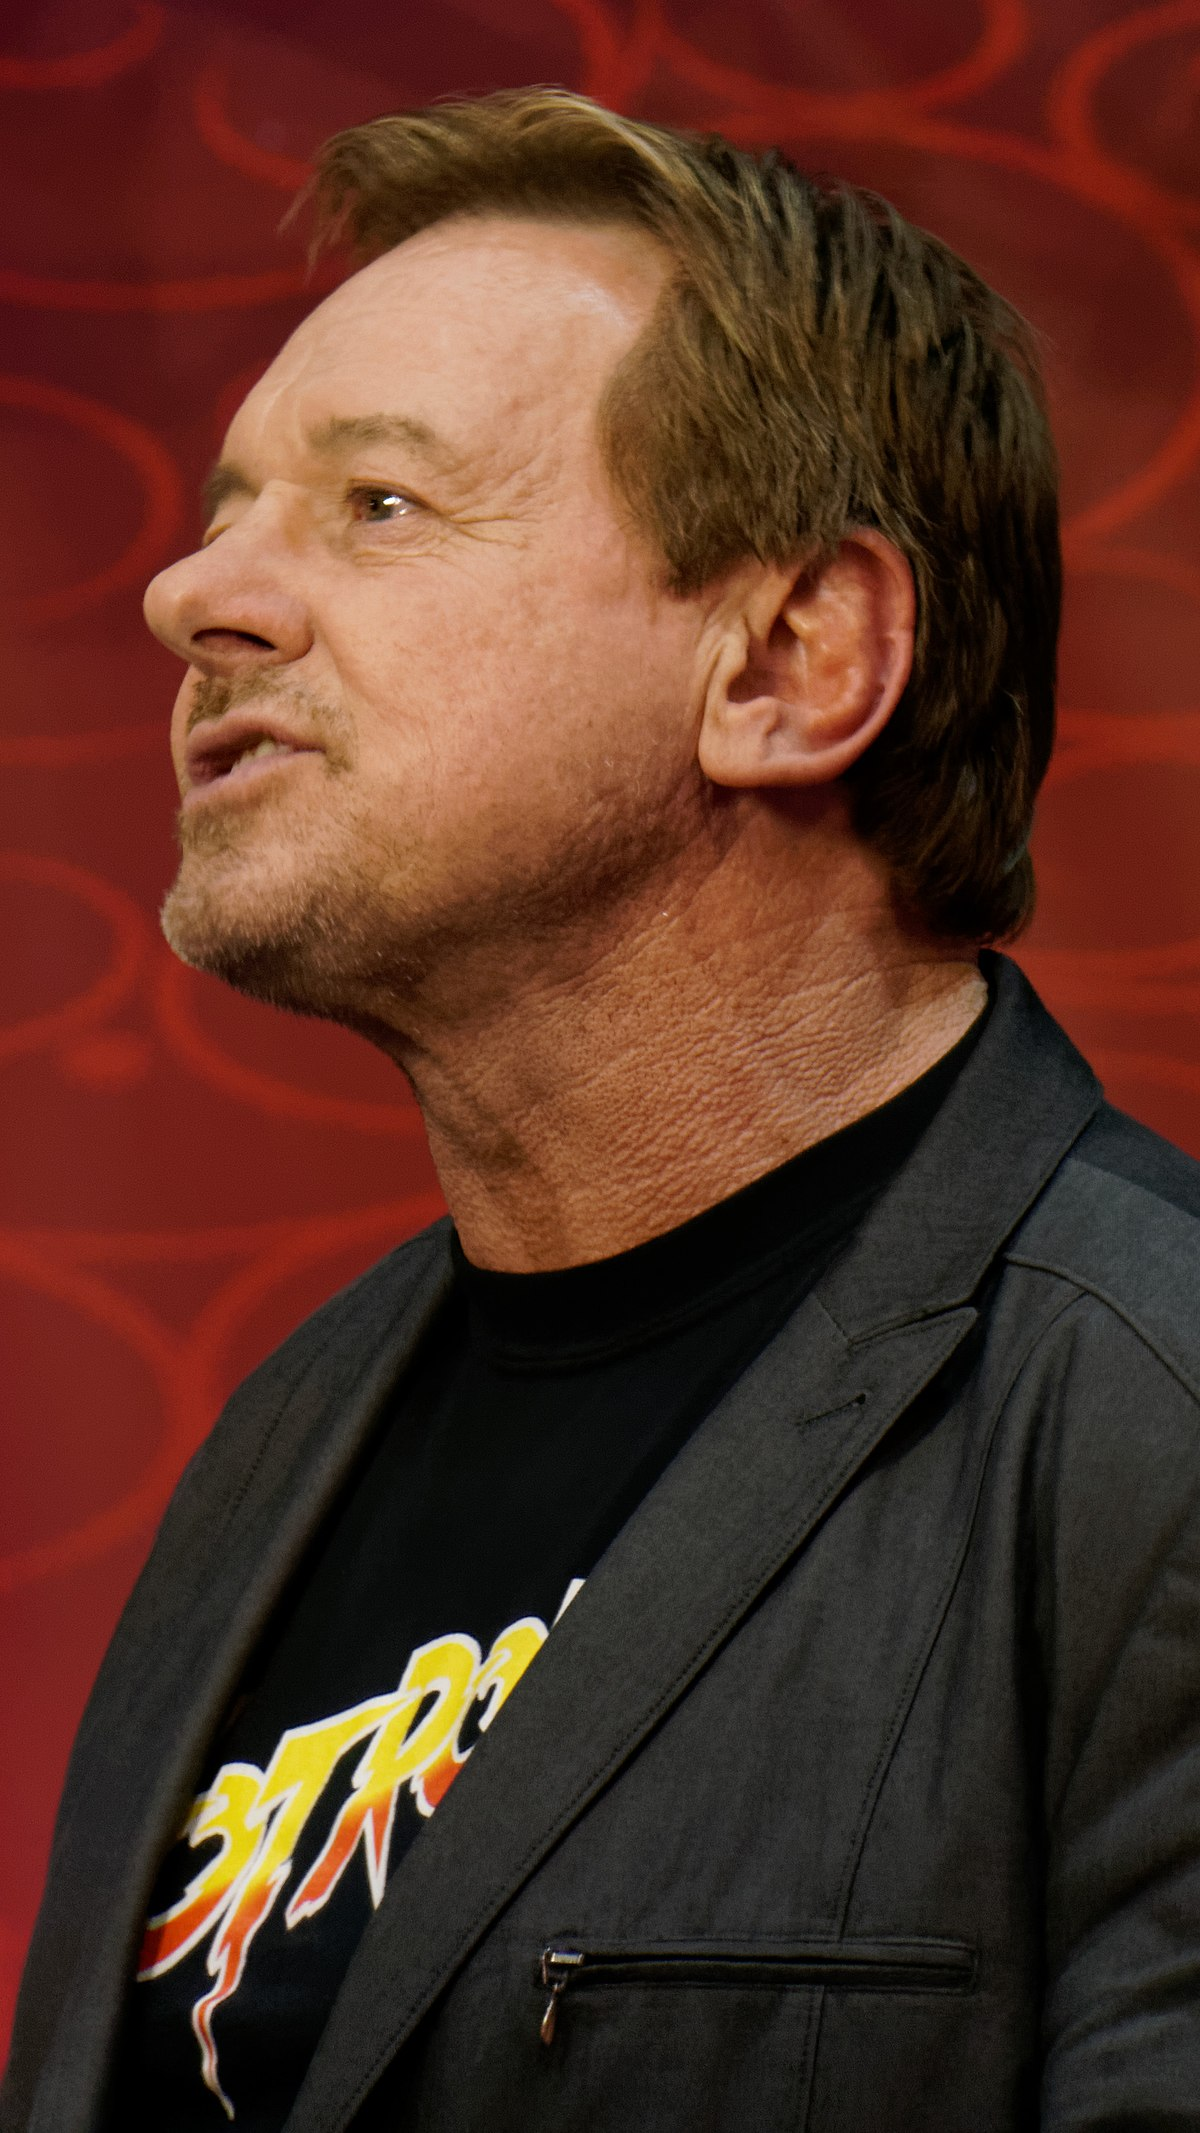 c16238dbc69 Roddy Piper - Wikipedia